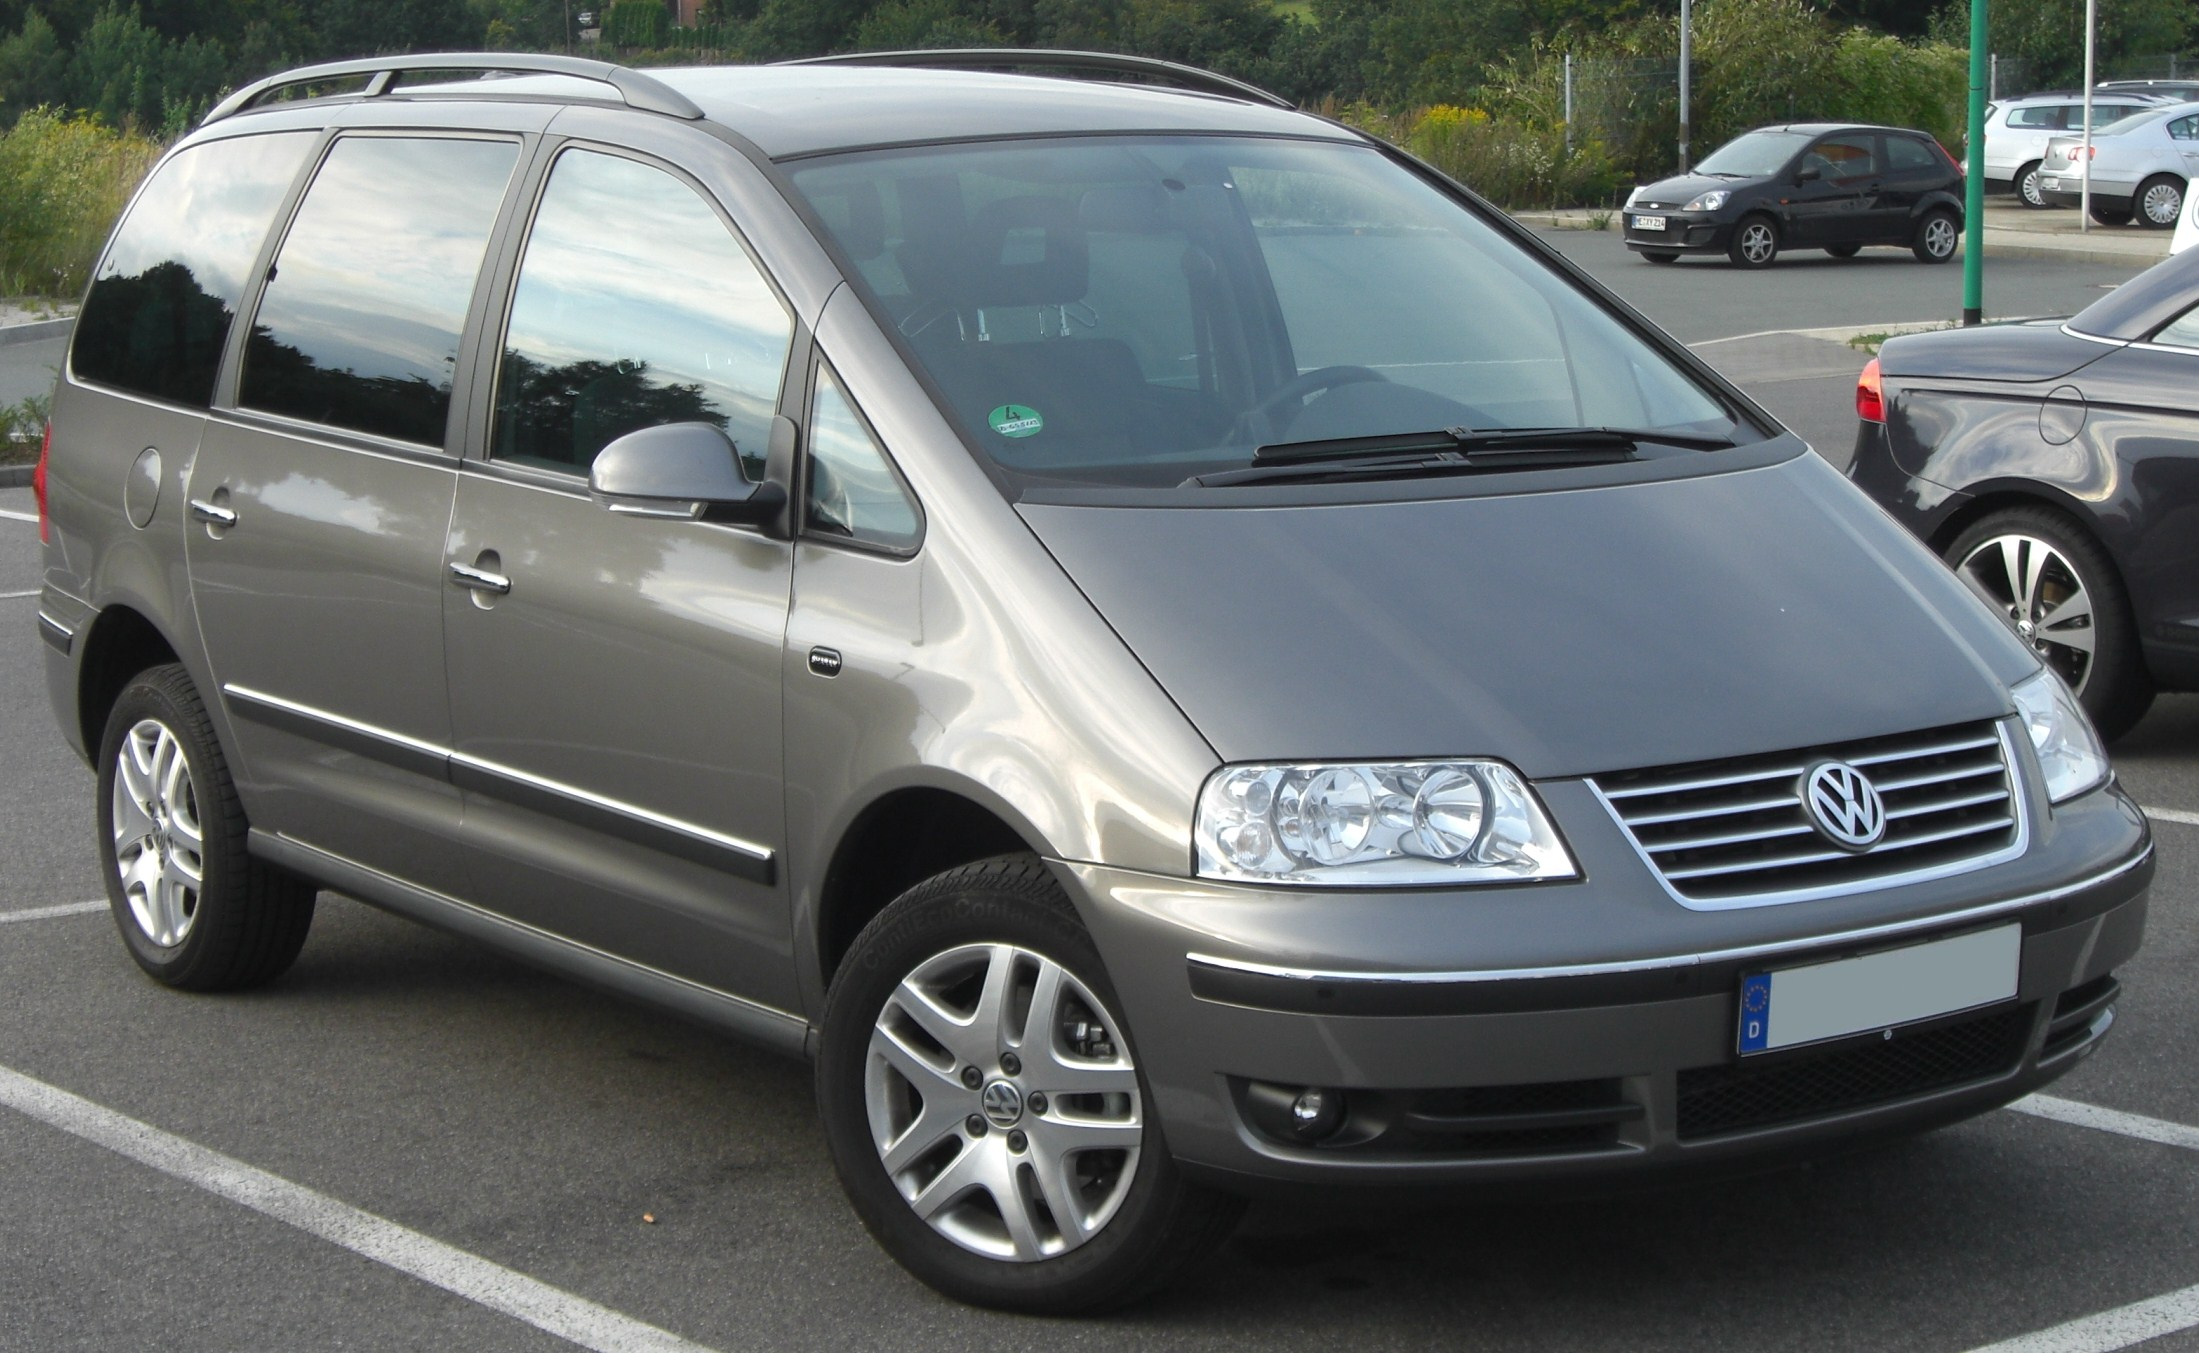 volkswagen sharan (7m) 2007 wallpaper #4